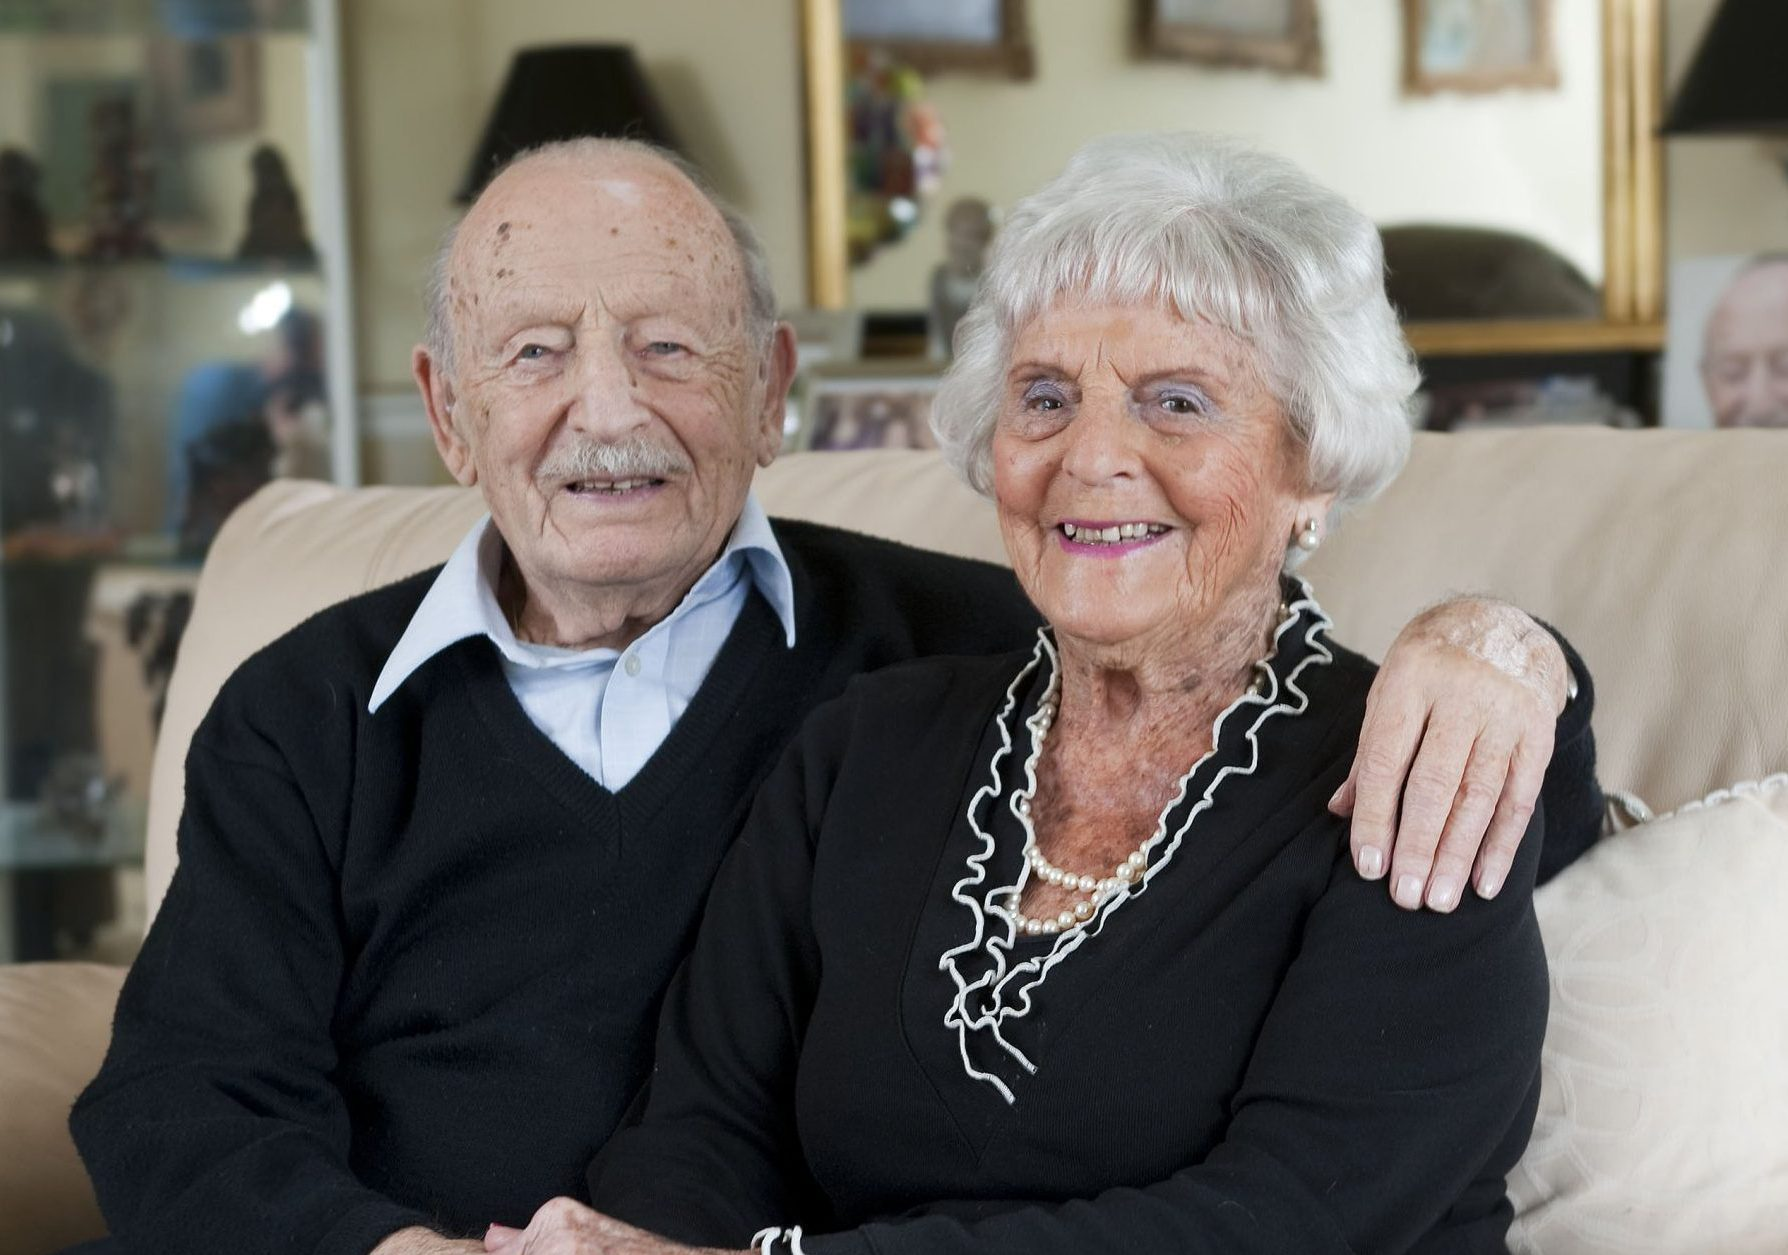 'Britain's longest married couple' have first row over Brexit